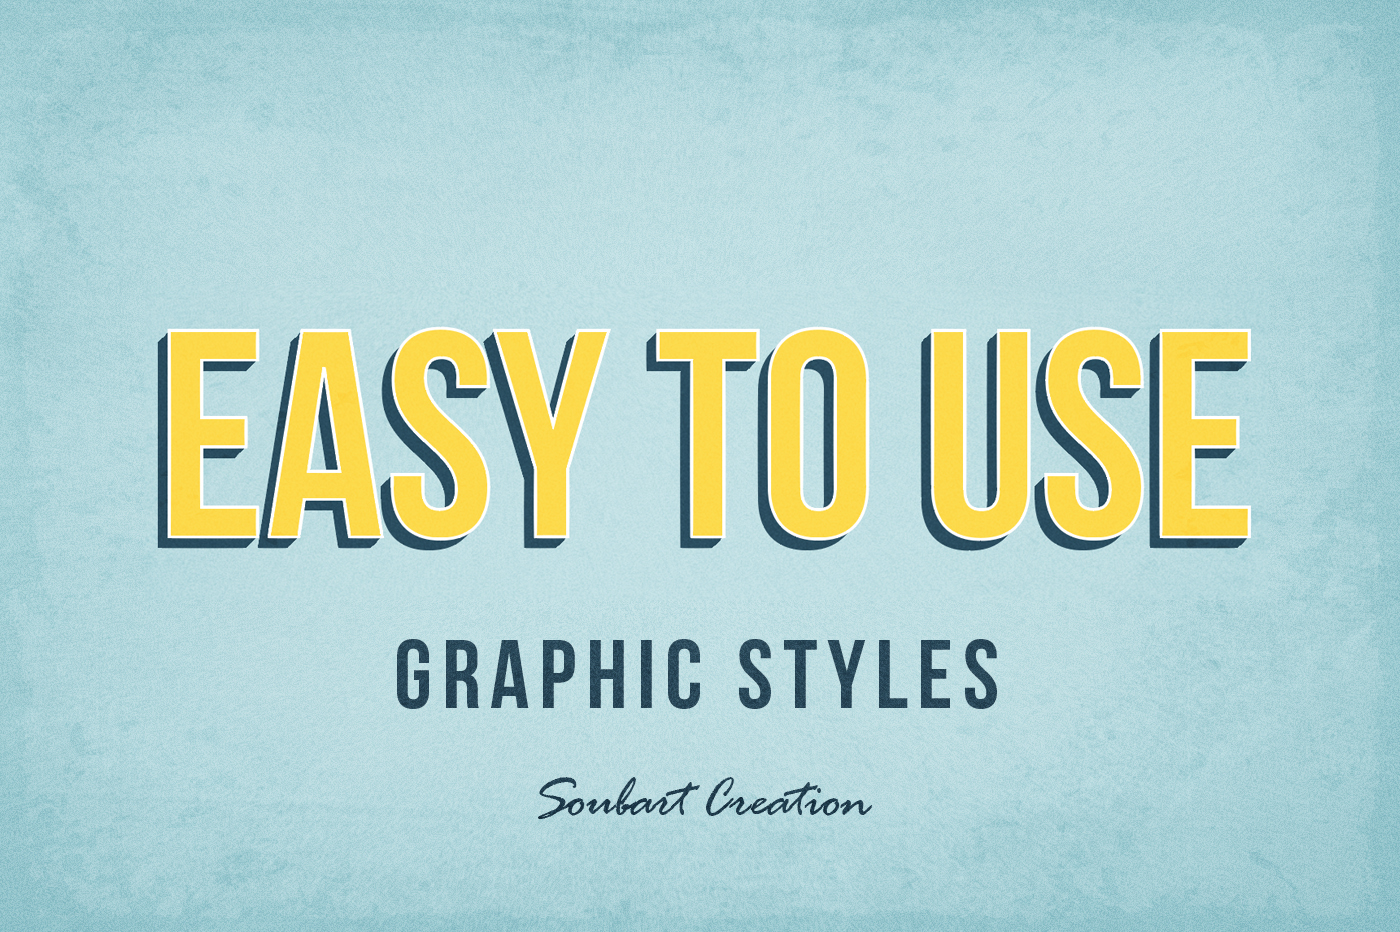 21 Vintage Retro Graphic Styles Download On Behance